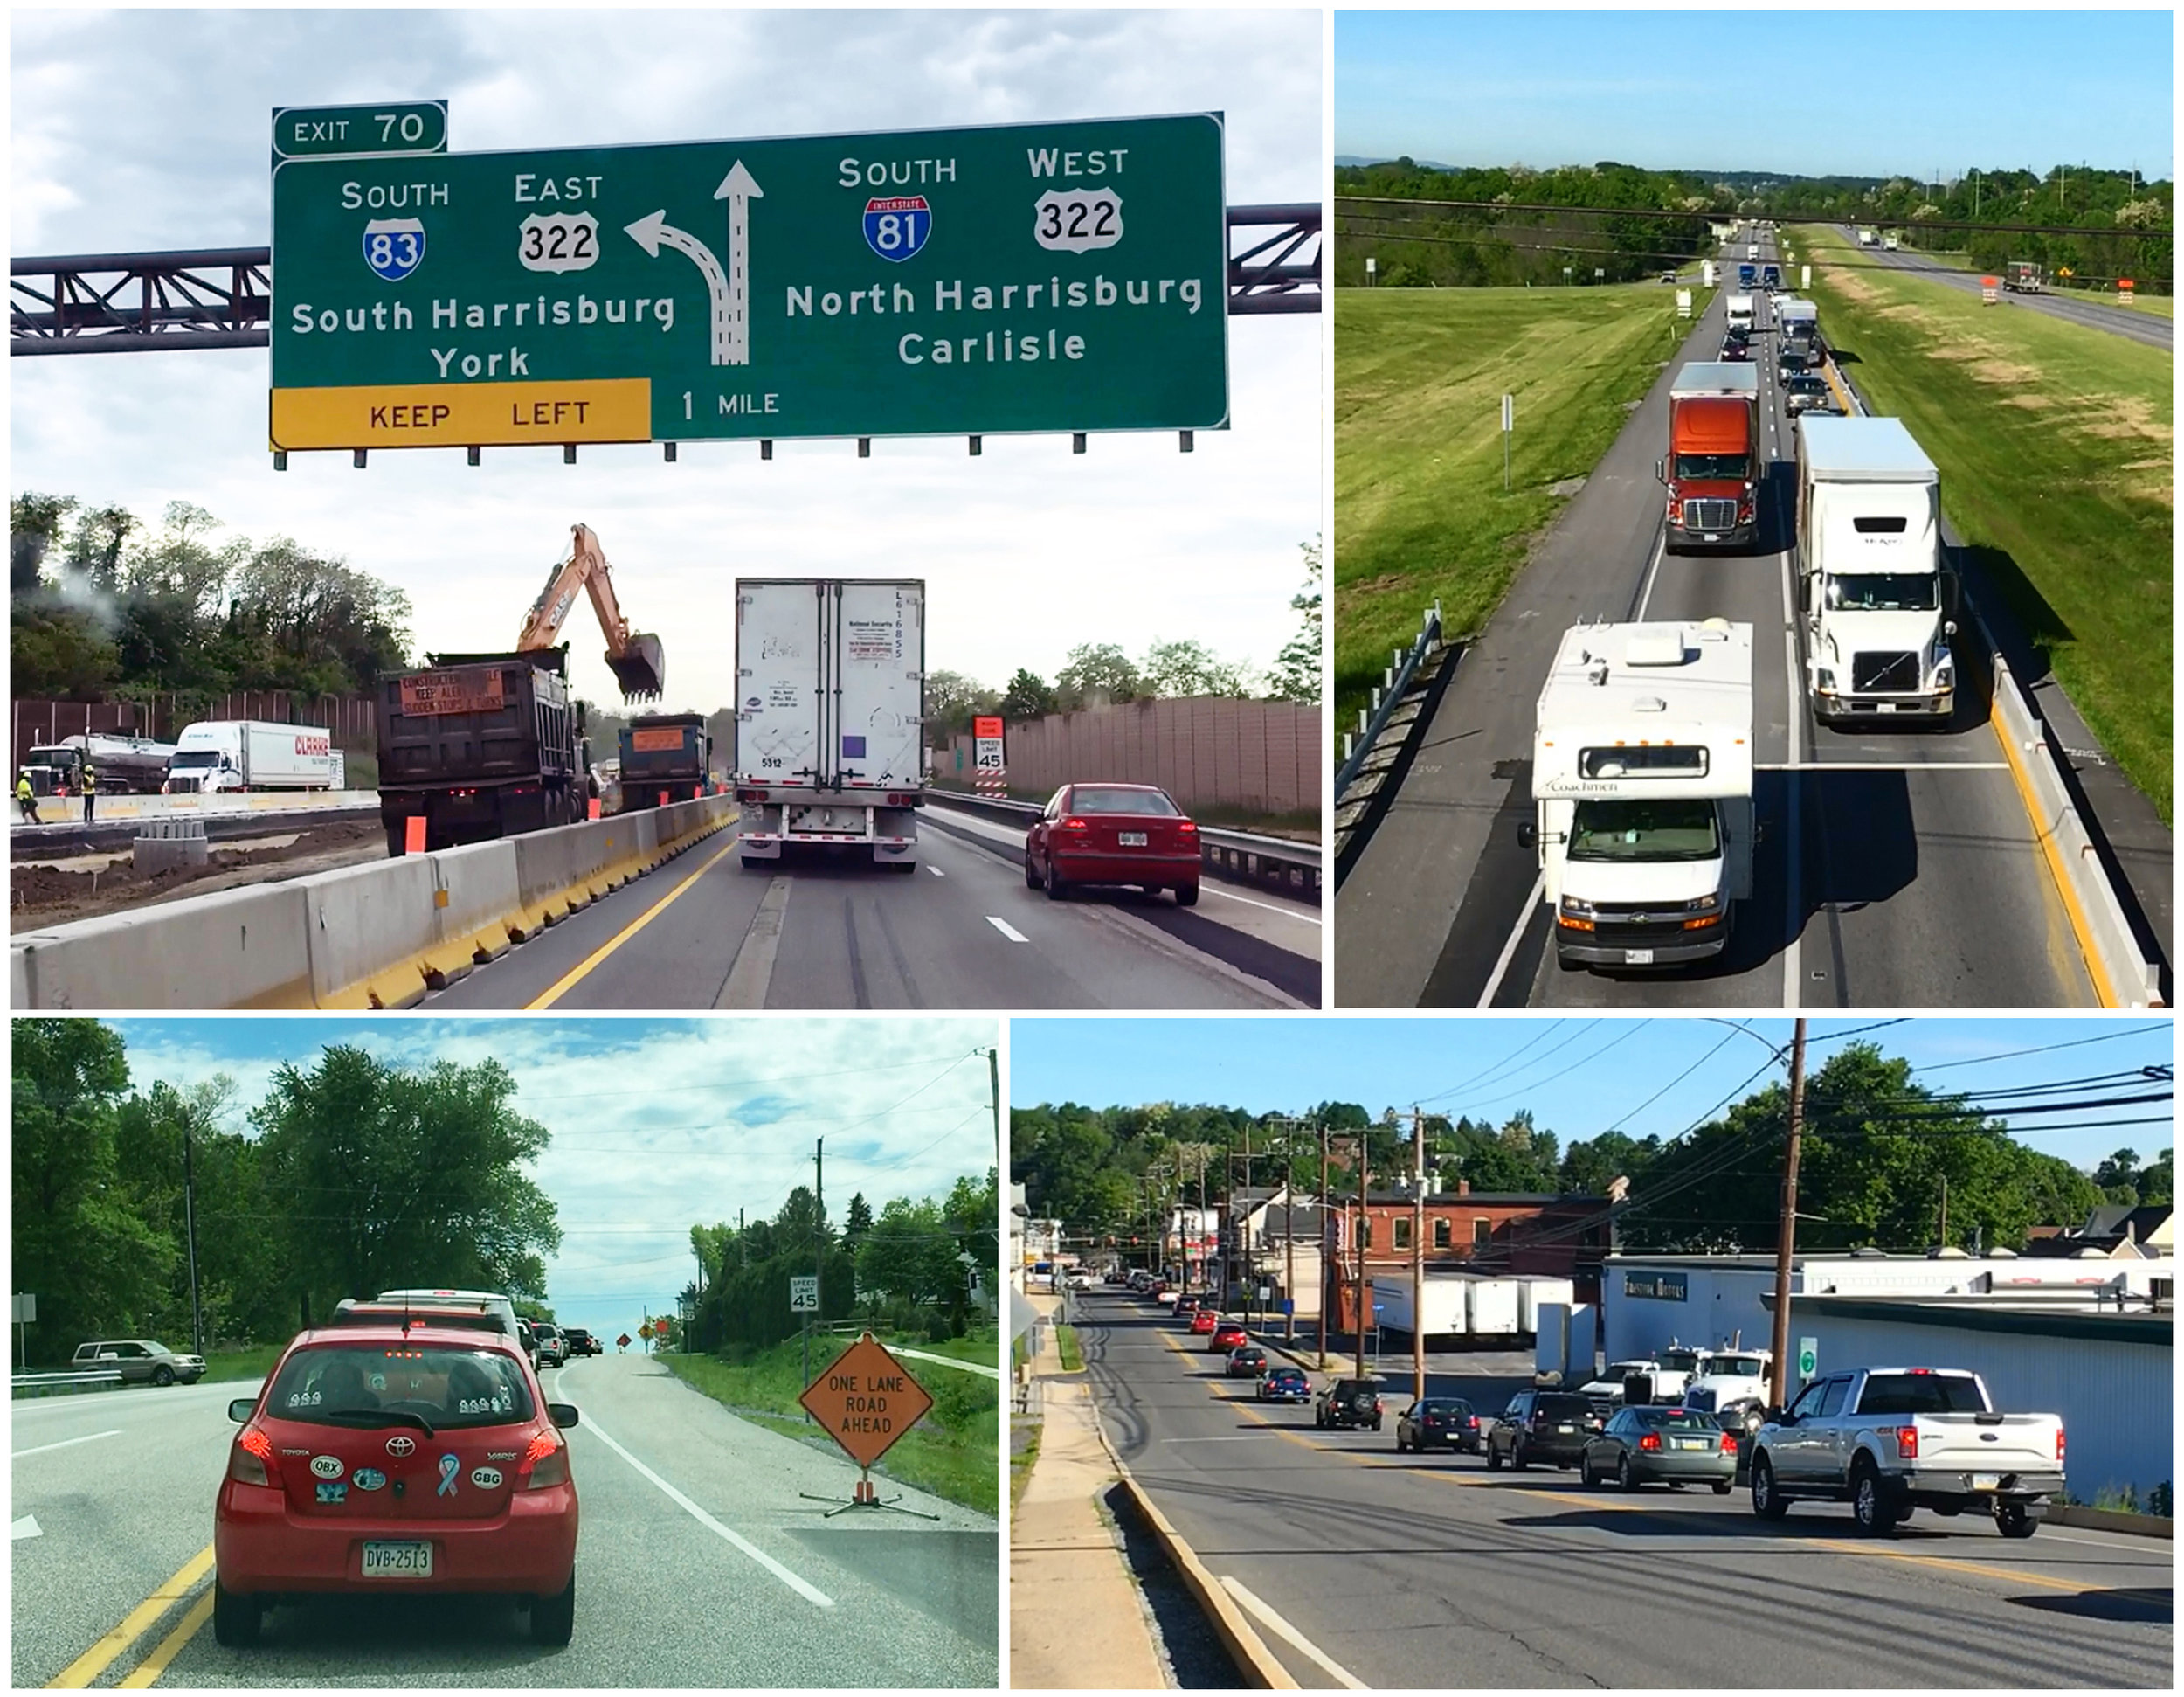 Photos of traffic on area roadways